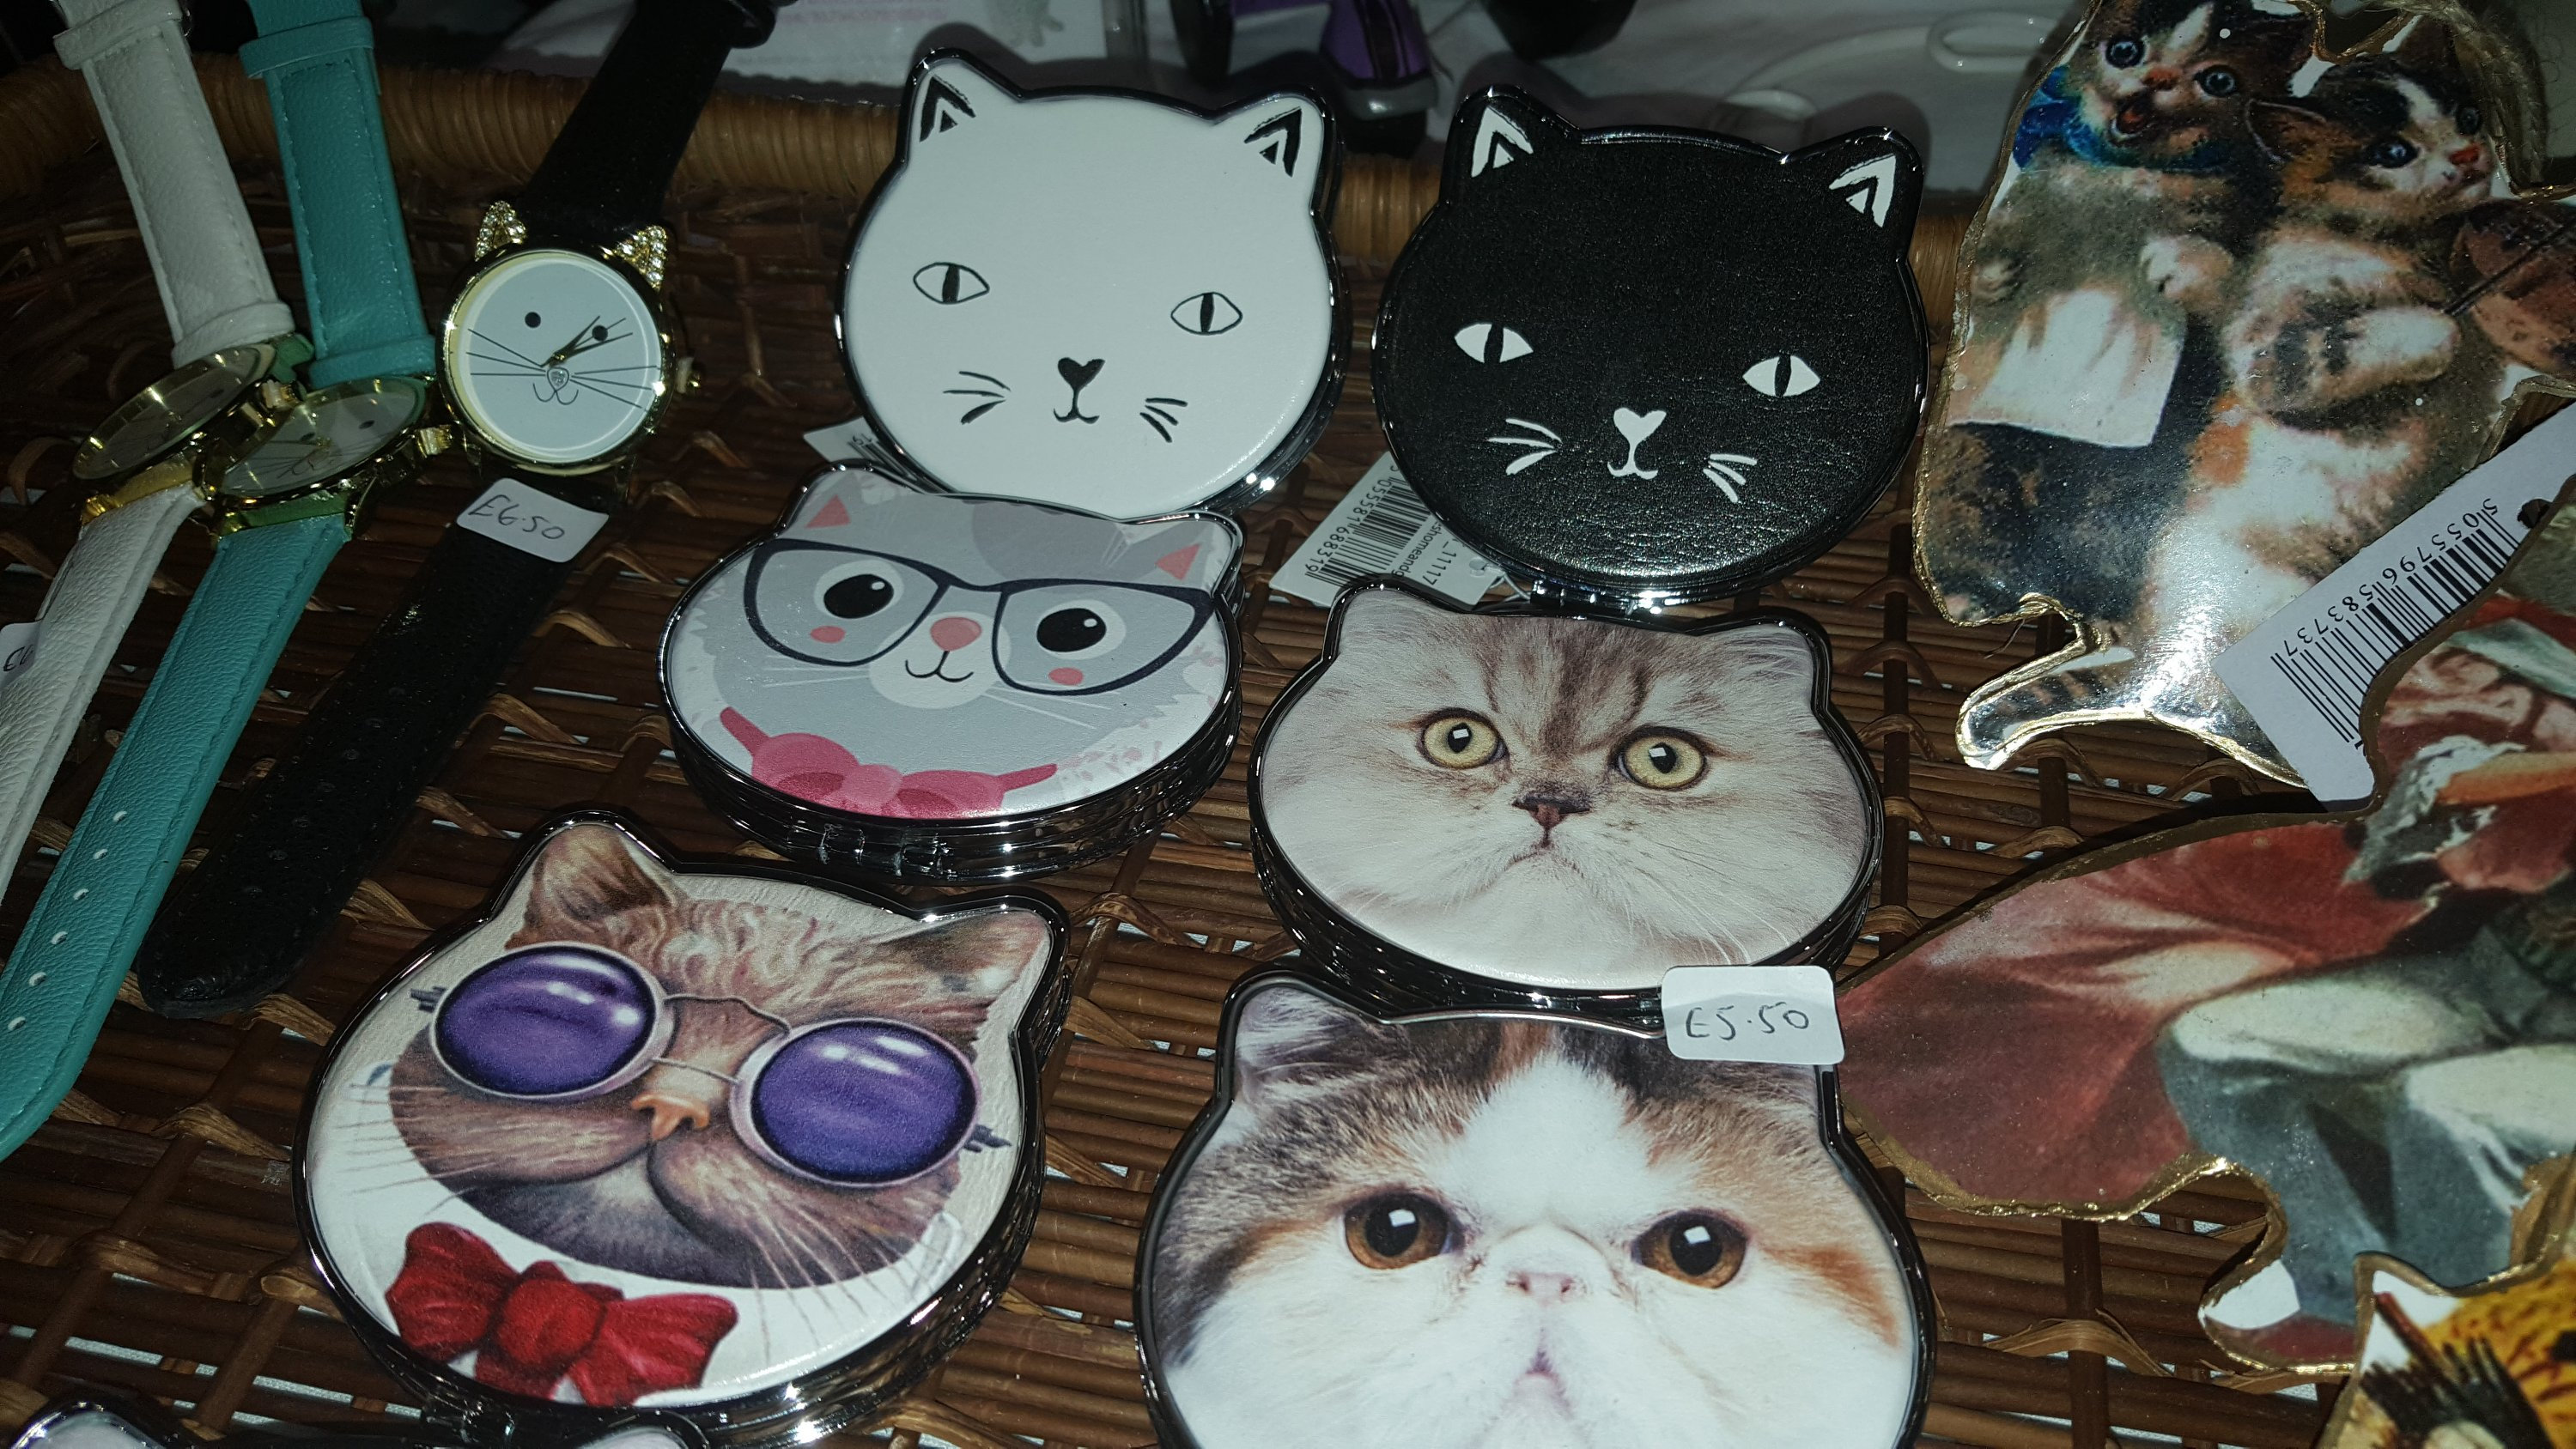 Vegan fair cat rescue cat mirrors